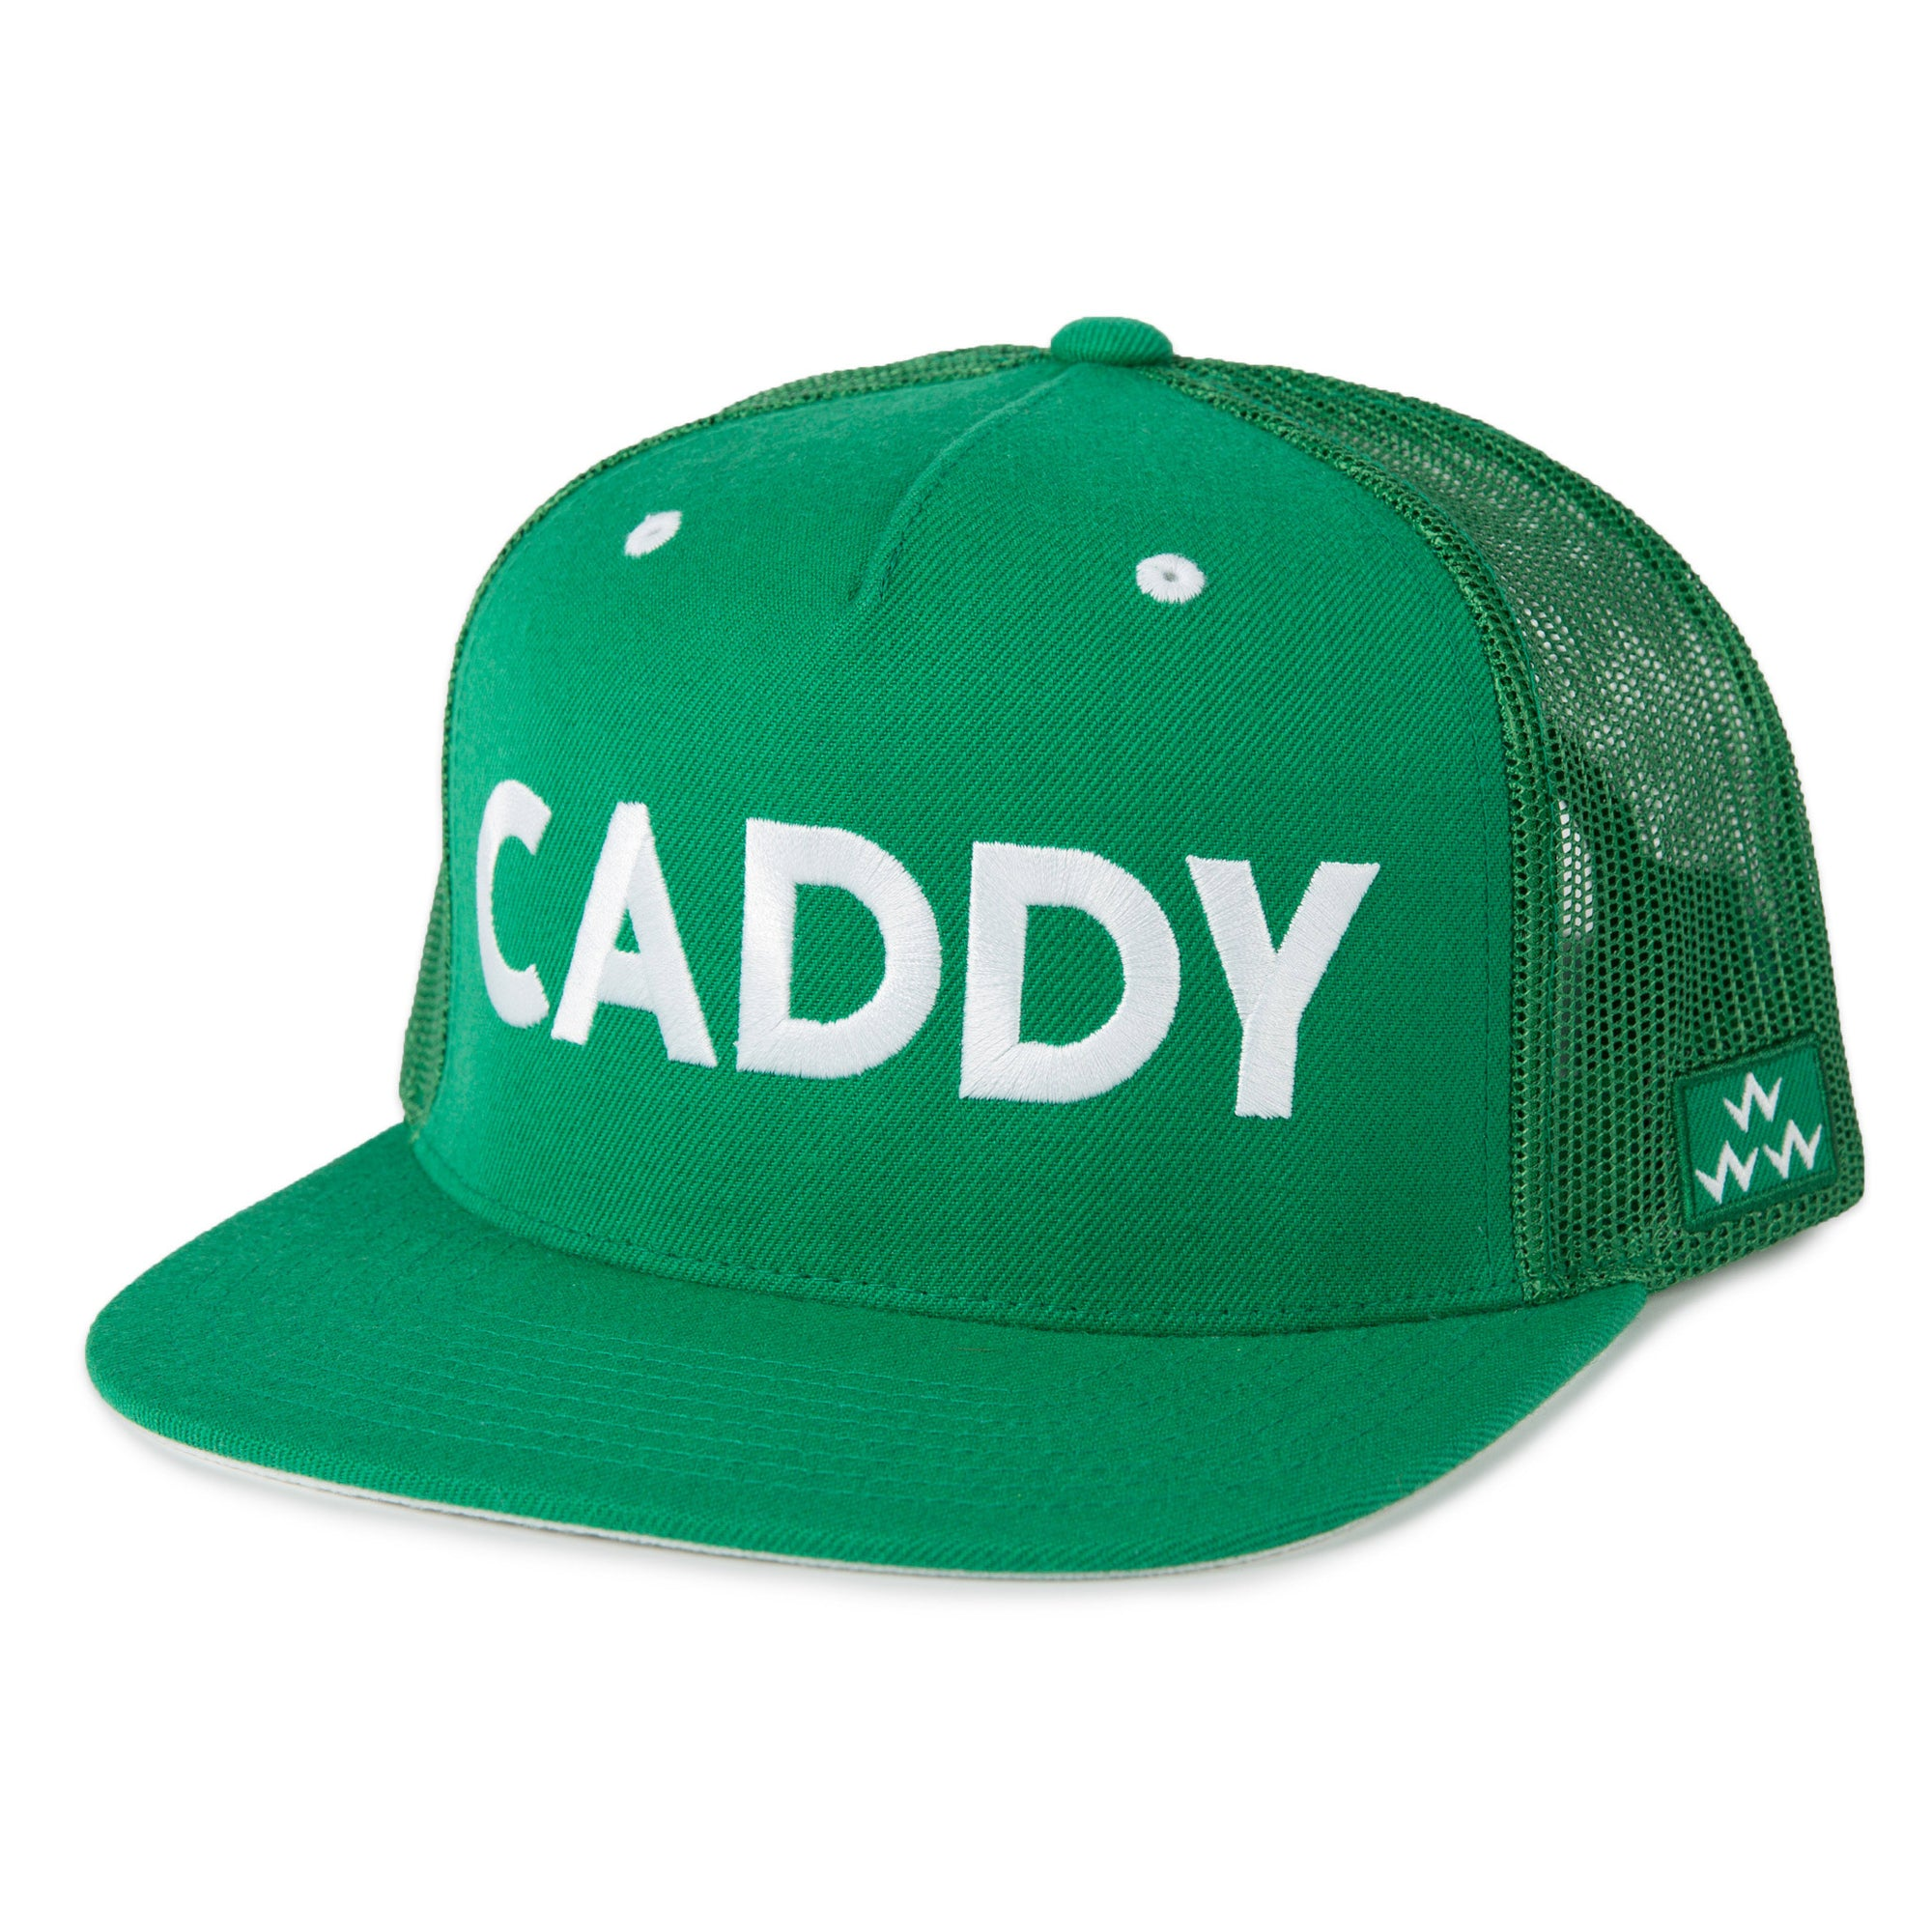 birds-of-condor-green-golf-caddy-trucker-hat-cap-front